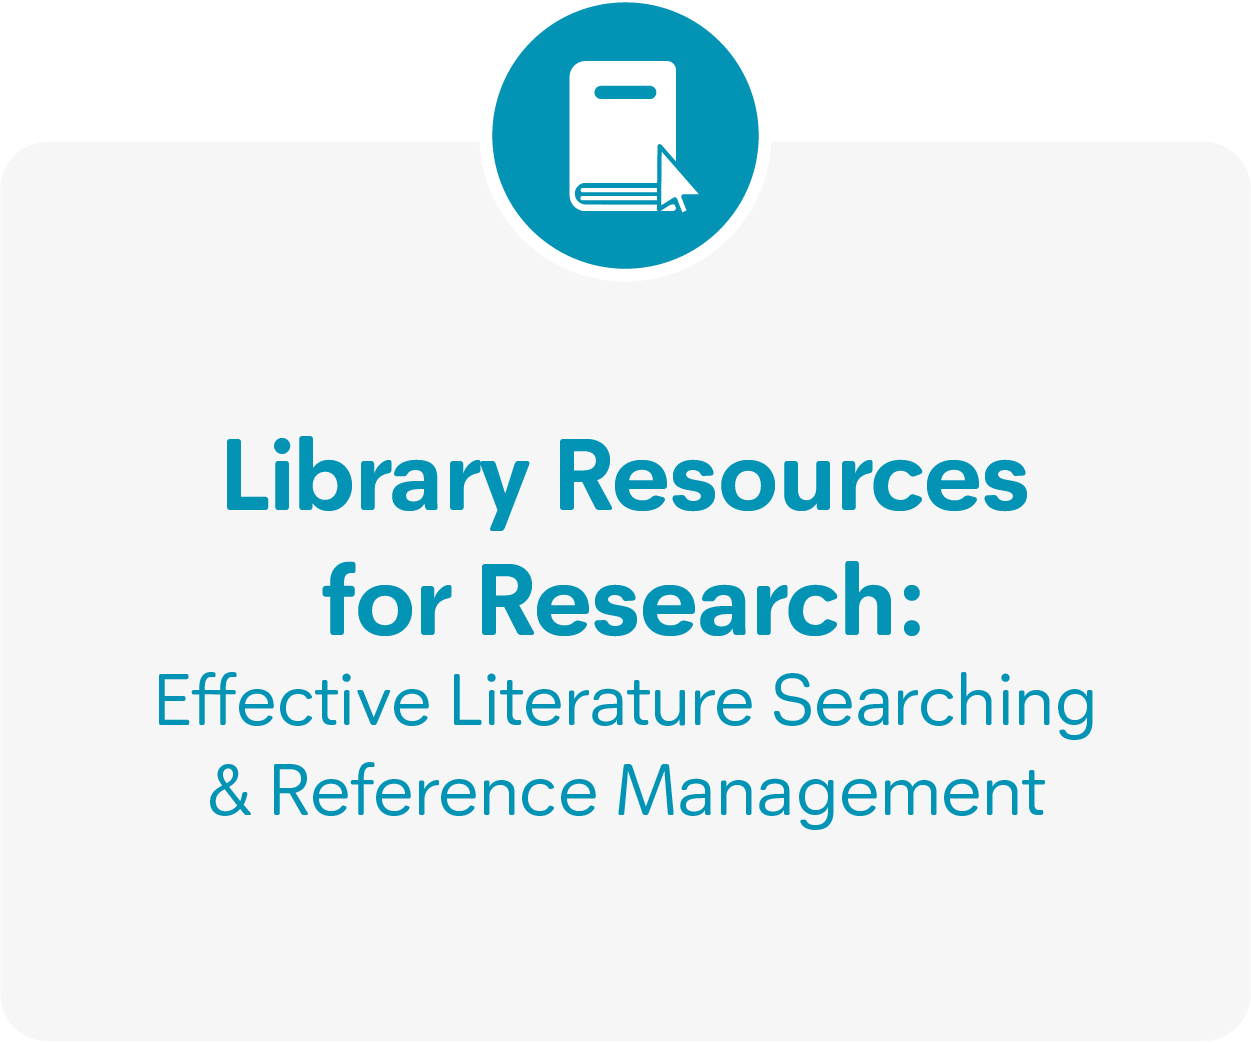 Library Resources guidance